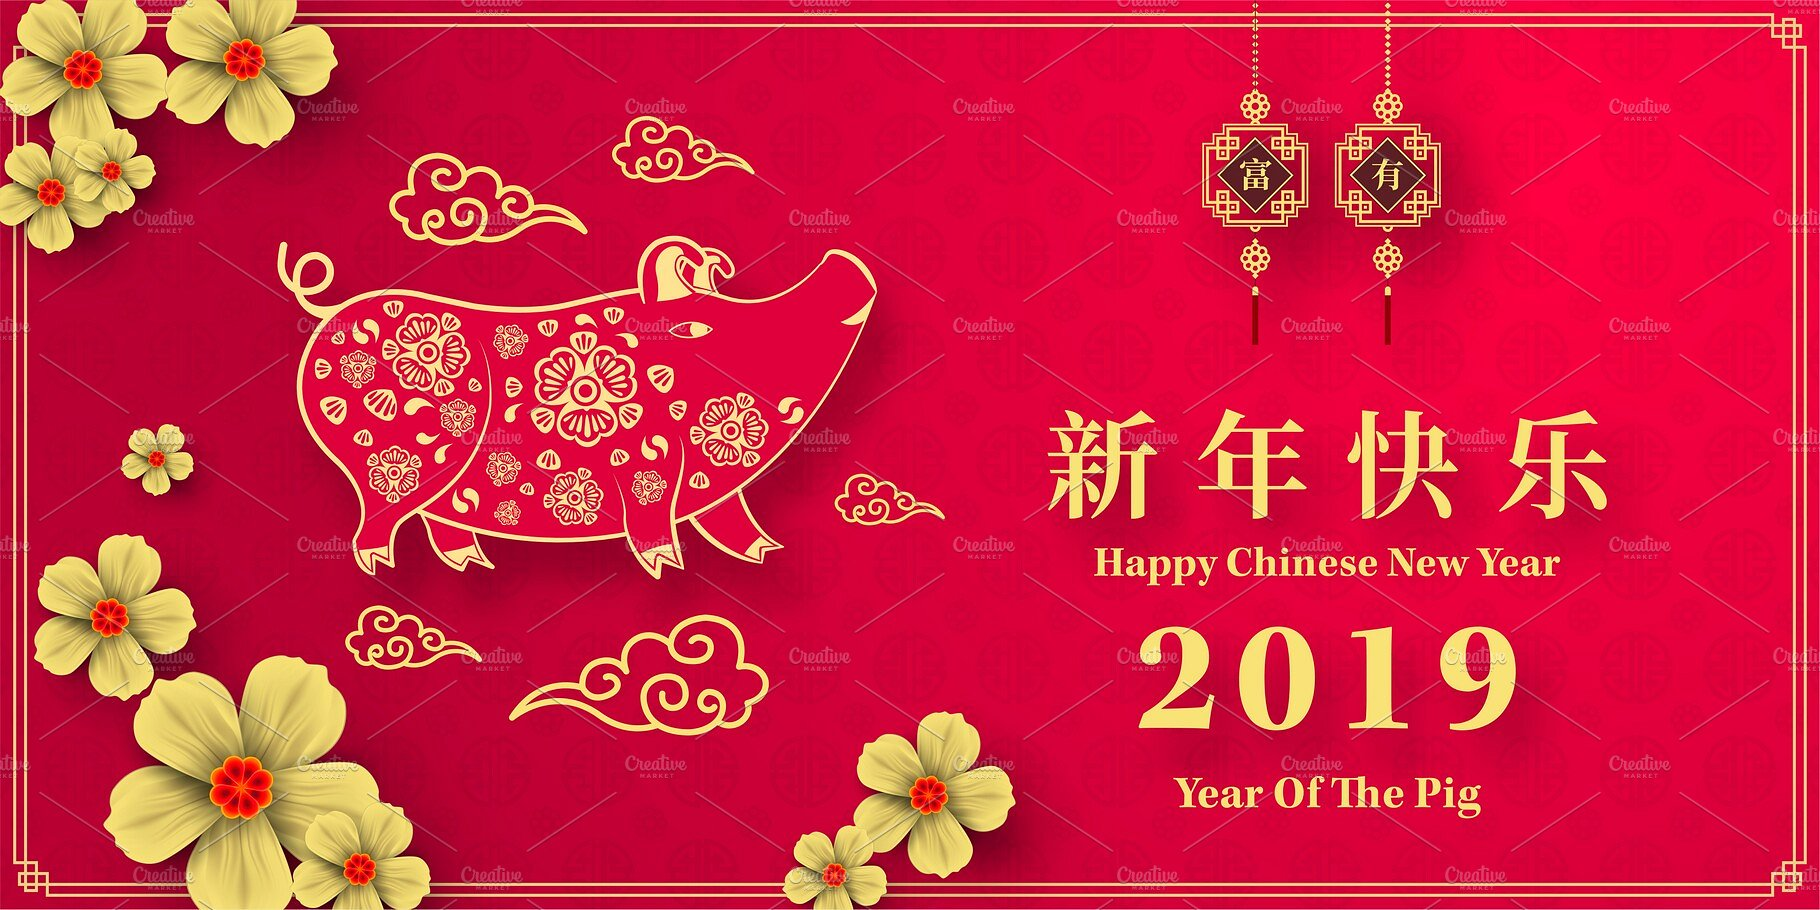 Happy Year of the Pig: Chinese New Year 2019 | Ethiopian Gazette